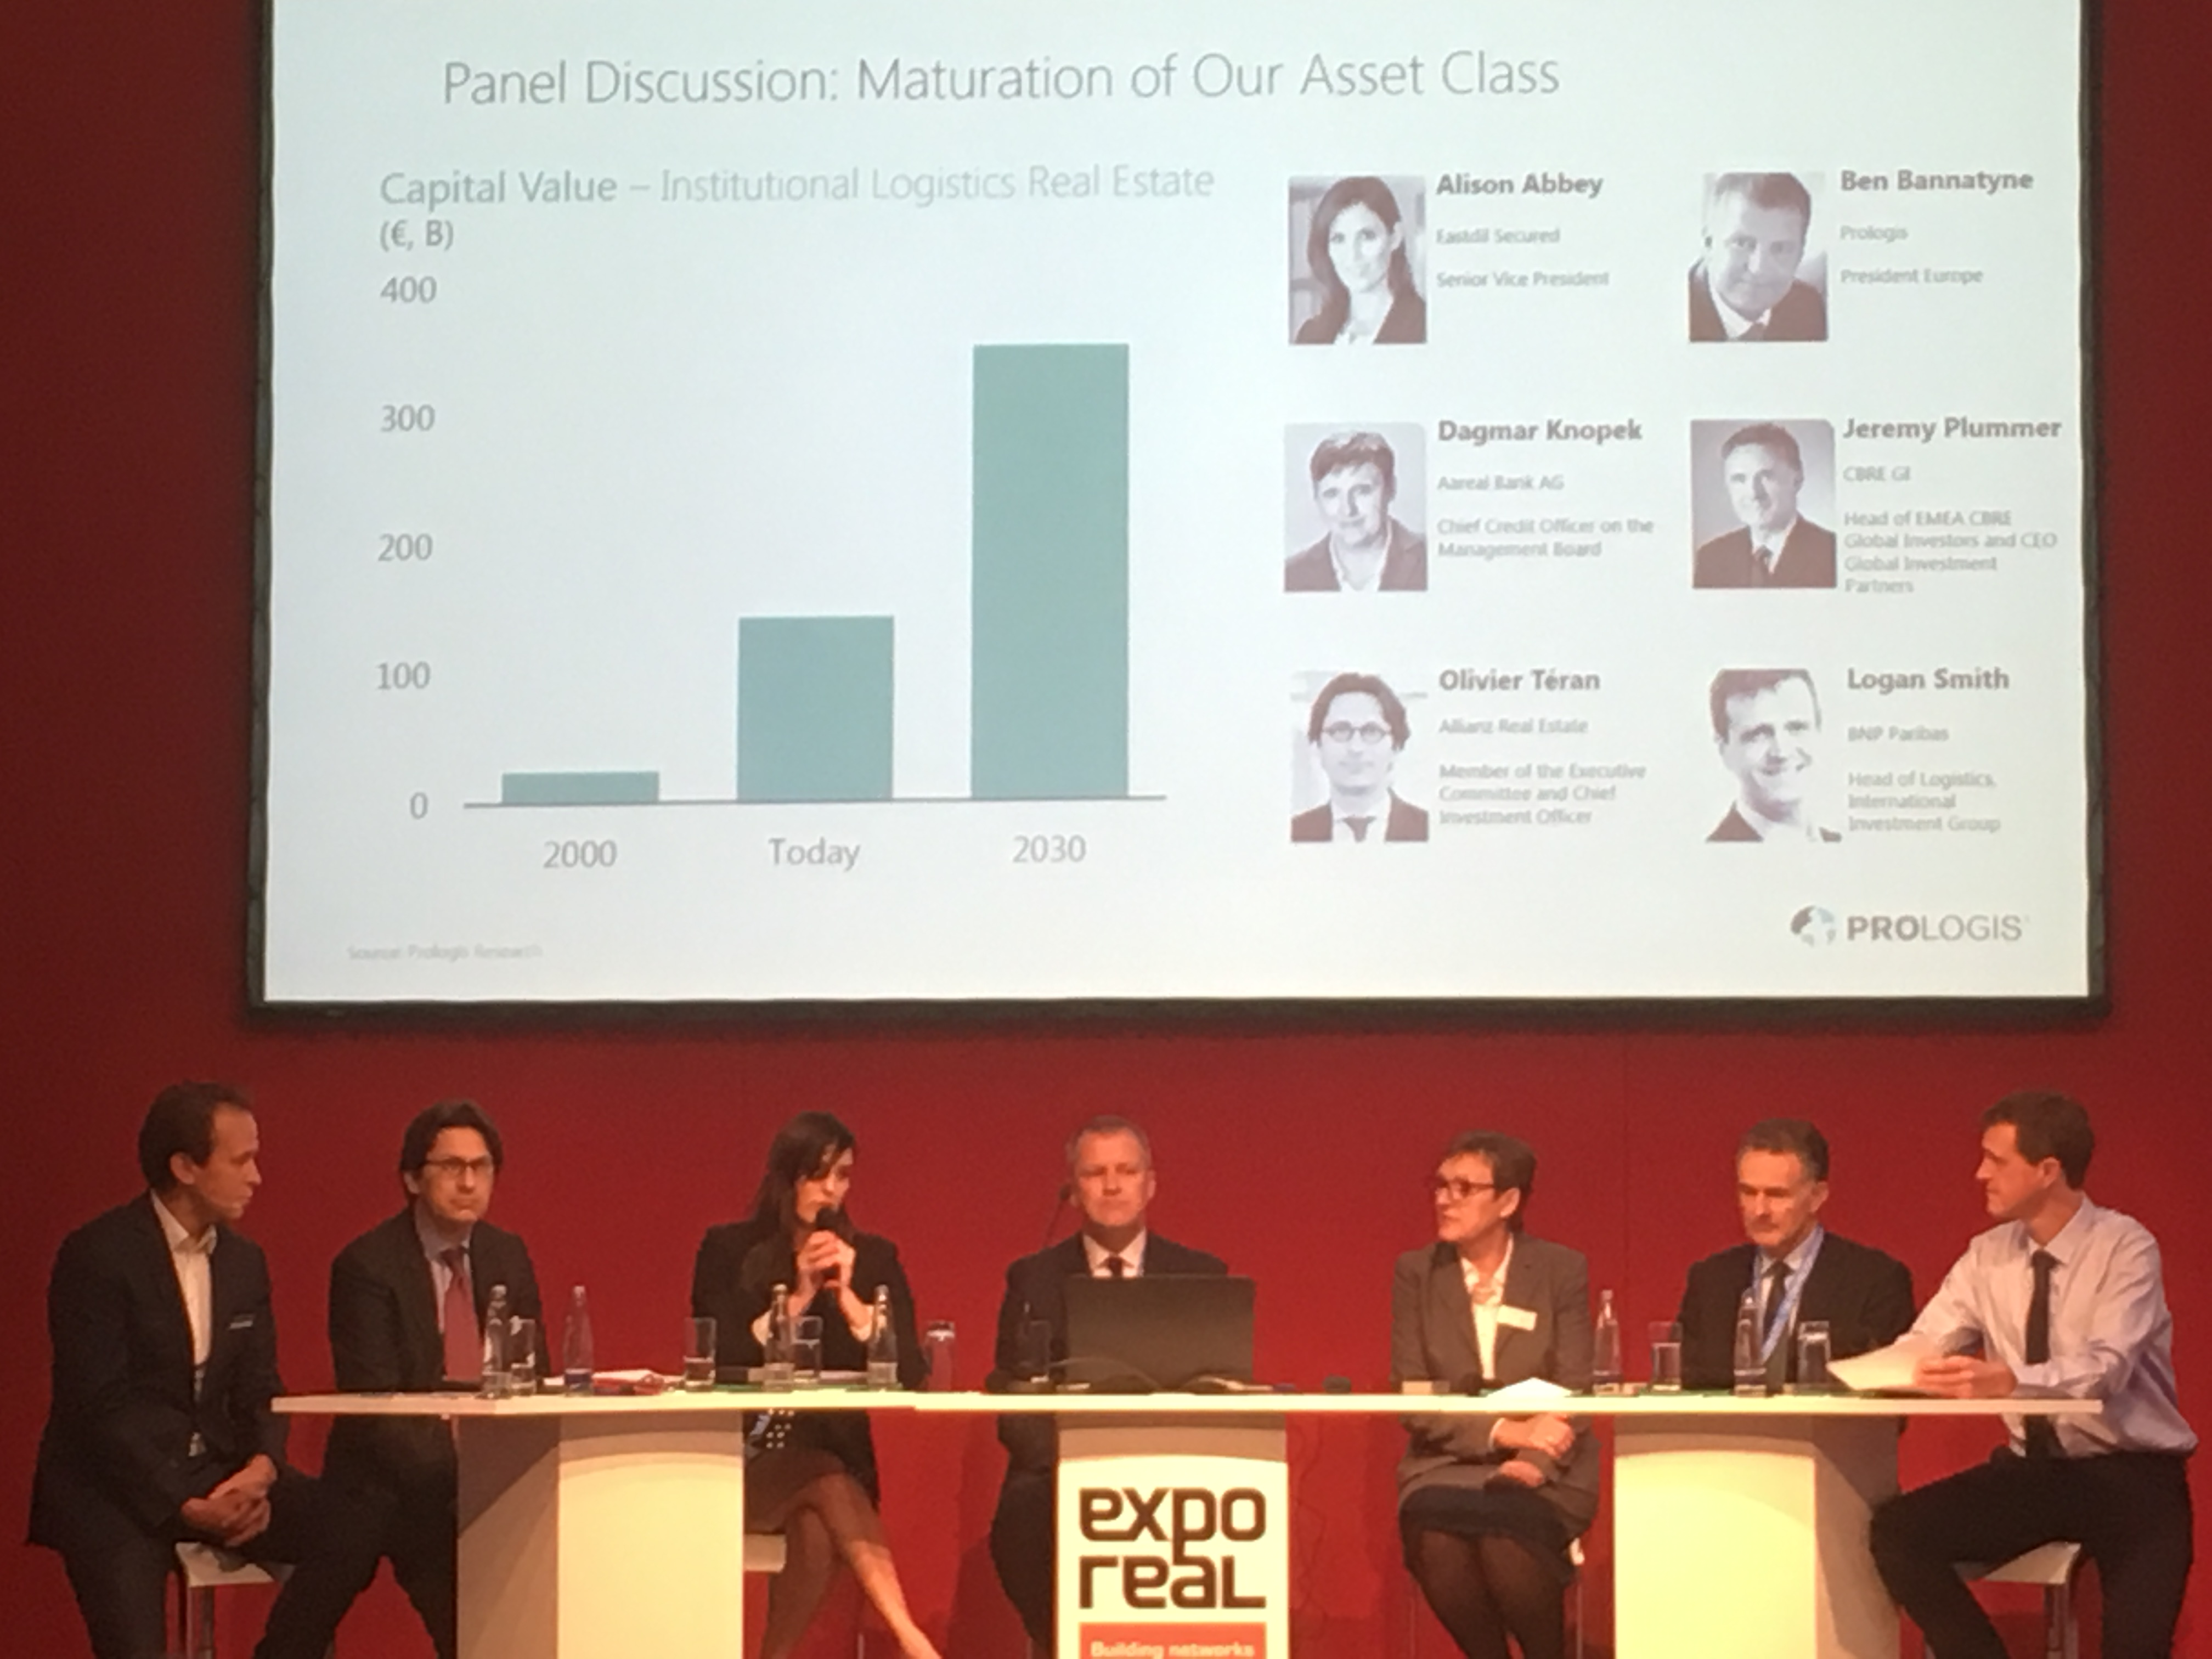 Expo Real 2017 panel: From revolution to evolution: The rise of logistics as an asset class